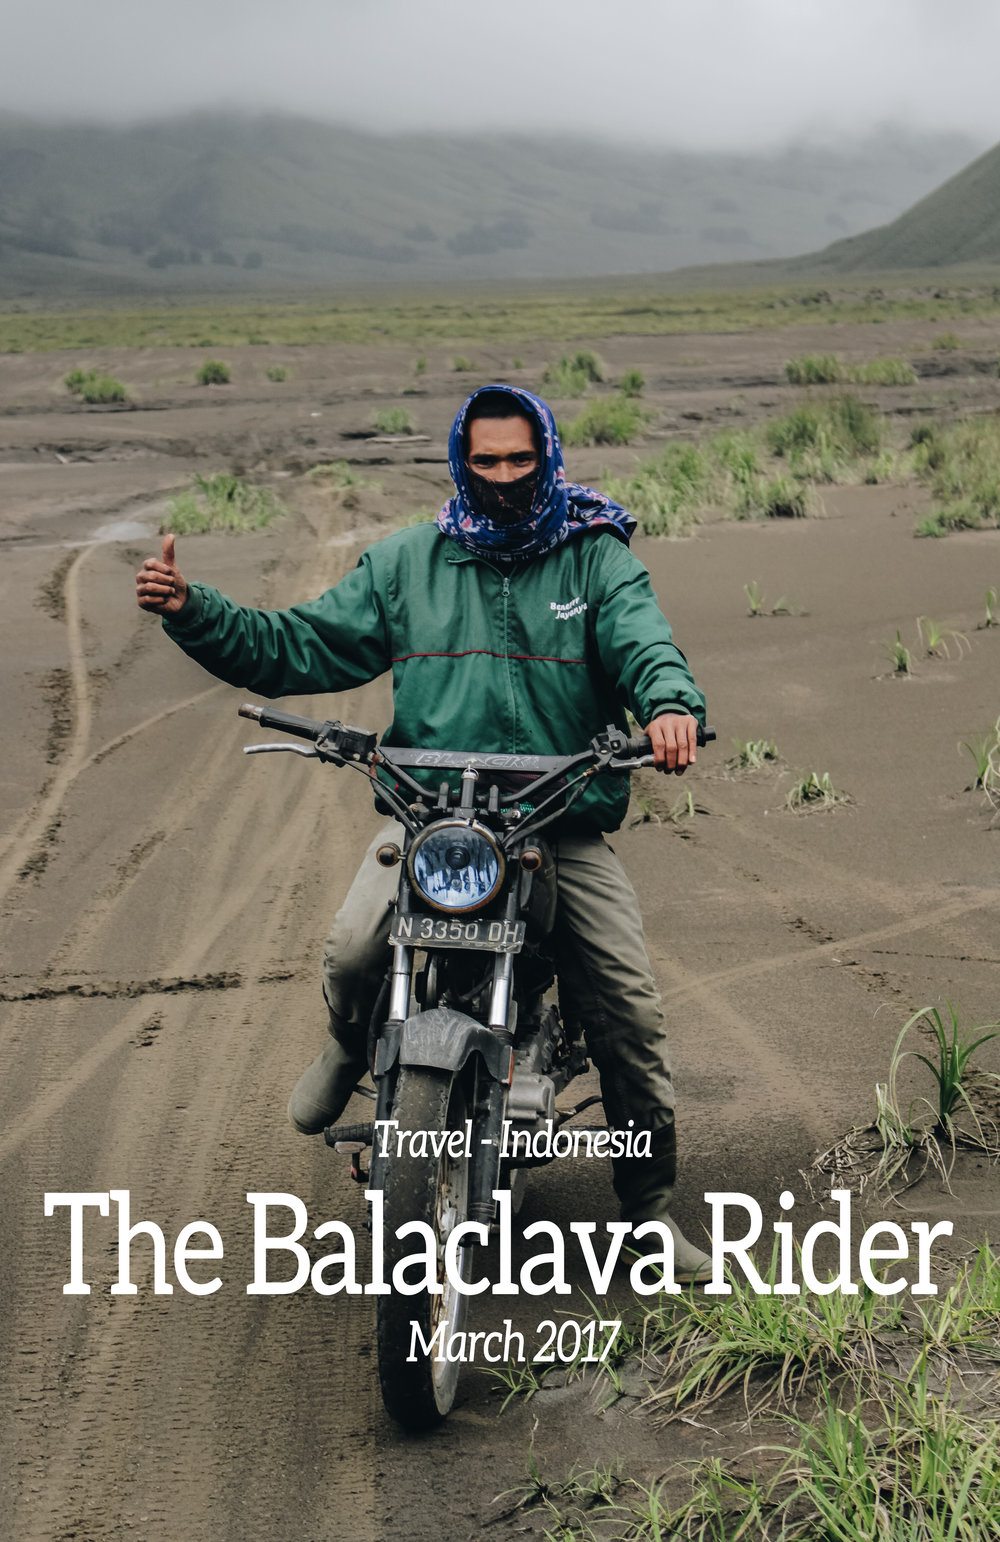 The Balaclava Rider - Getting lost isn't always a bad thing.